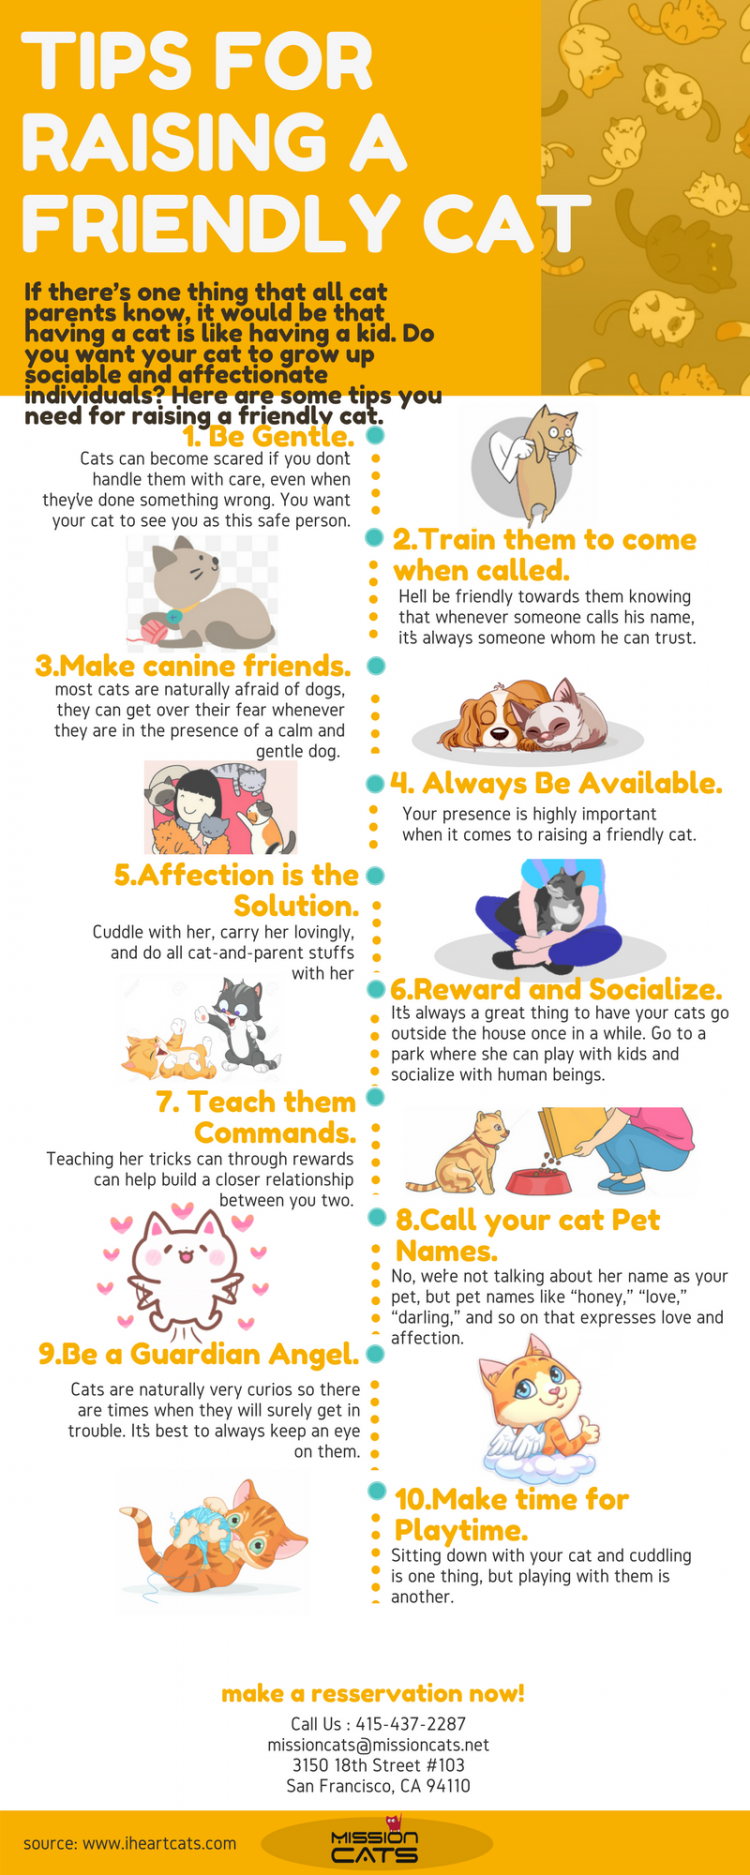 Tips for Raising a Friendly Cat